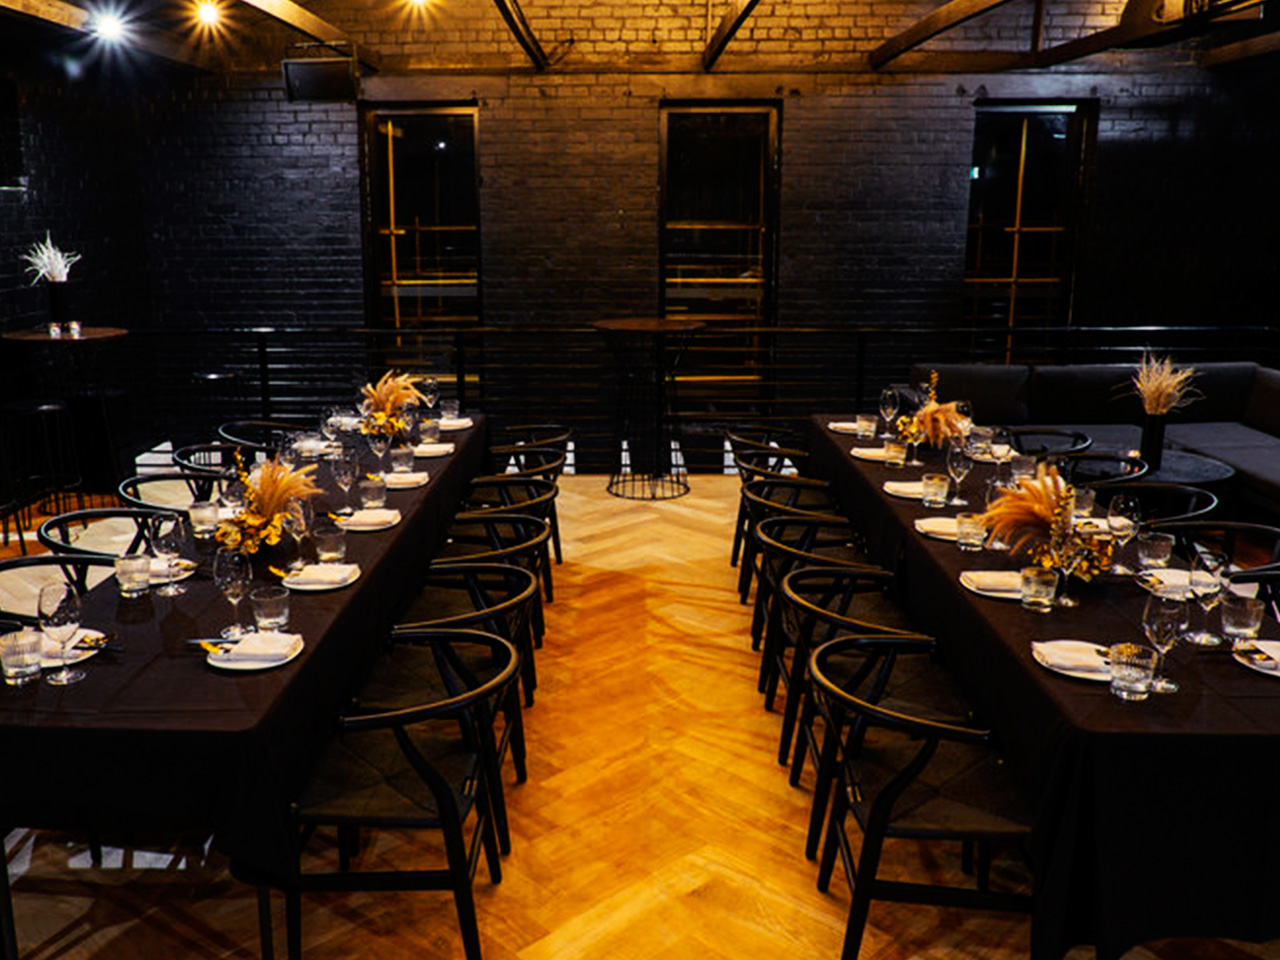 Long Tables And Chairs Setup For An Event With Warm Lights Inside The Unique Dark Function Room